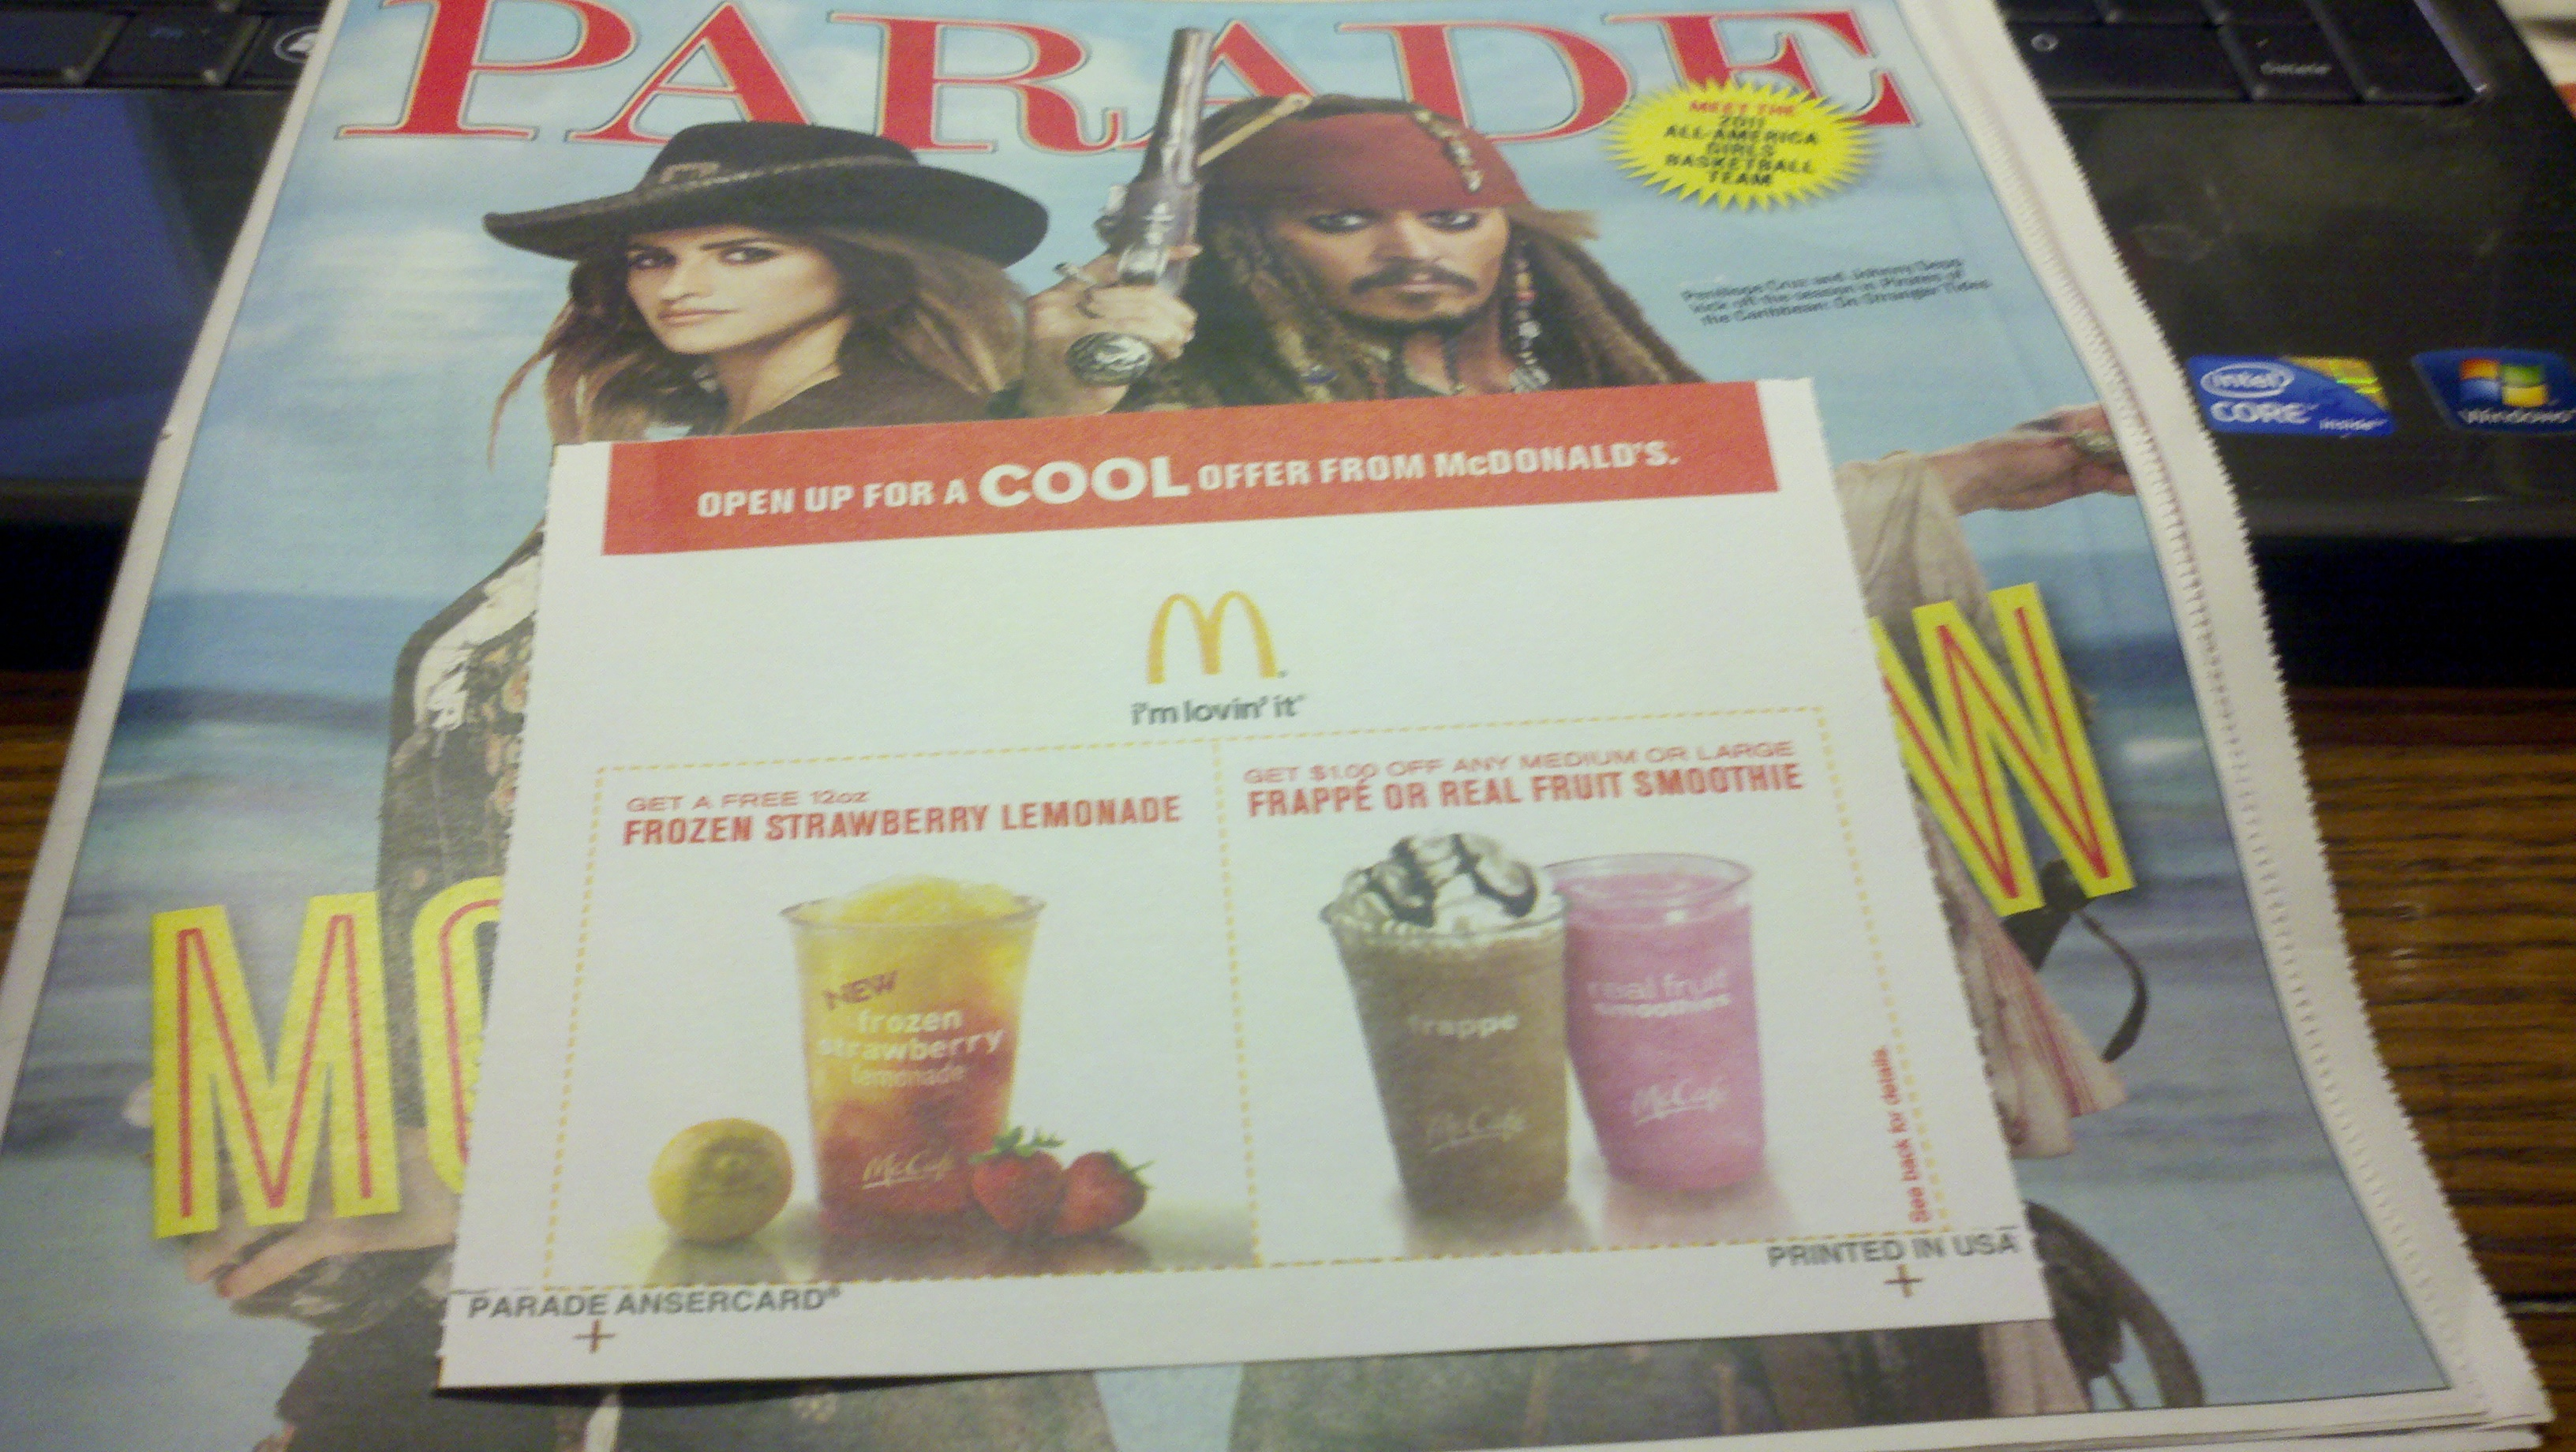 Free Mcdonald's Frozen Strawberry Lemonade Coupon In The Parade - Free Mcdonalds Smoothie Printable Coupon